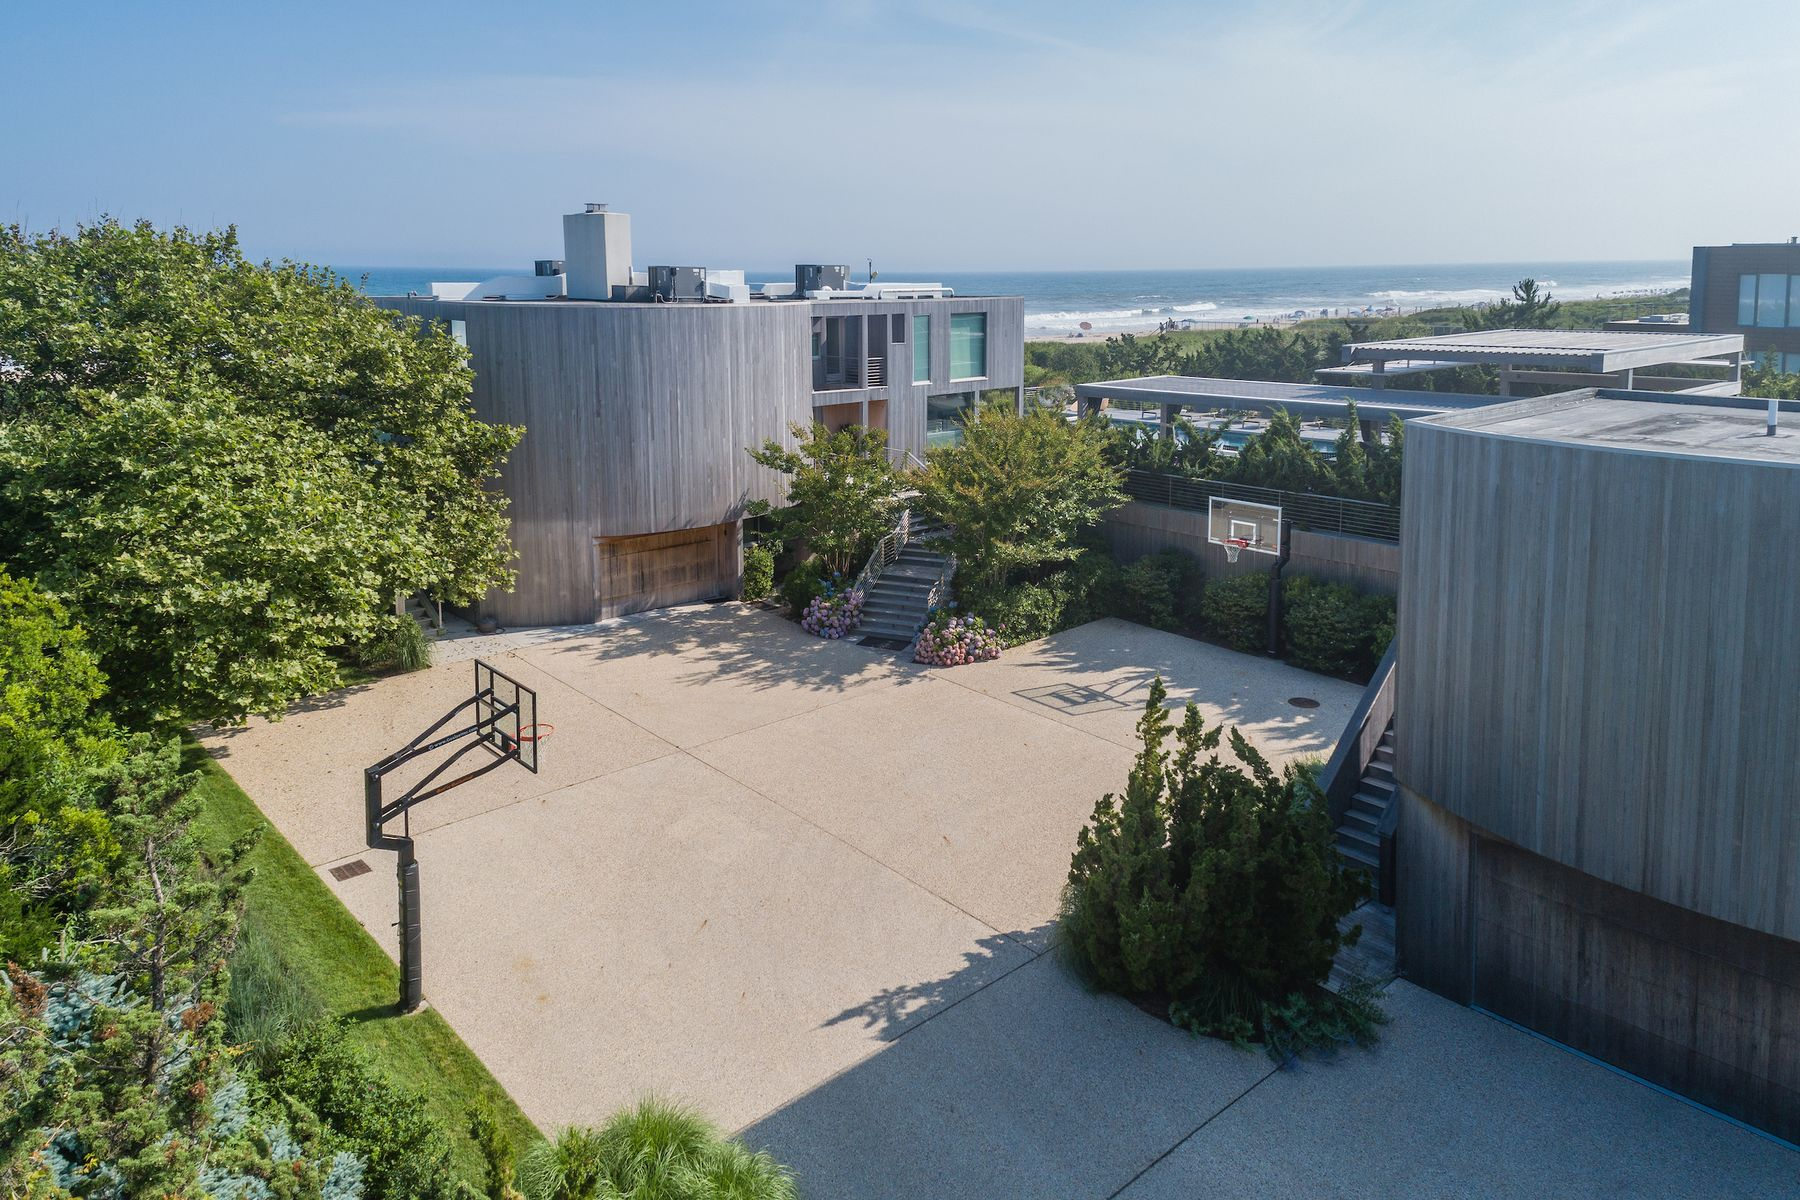 Single Family Home for Active at The Best of The Best Oceanfront 67 Surfside Road Bridgehampton, New York 11932 United States